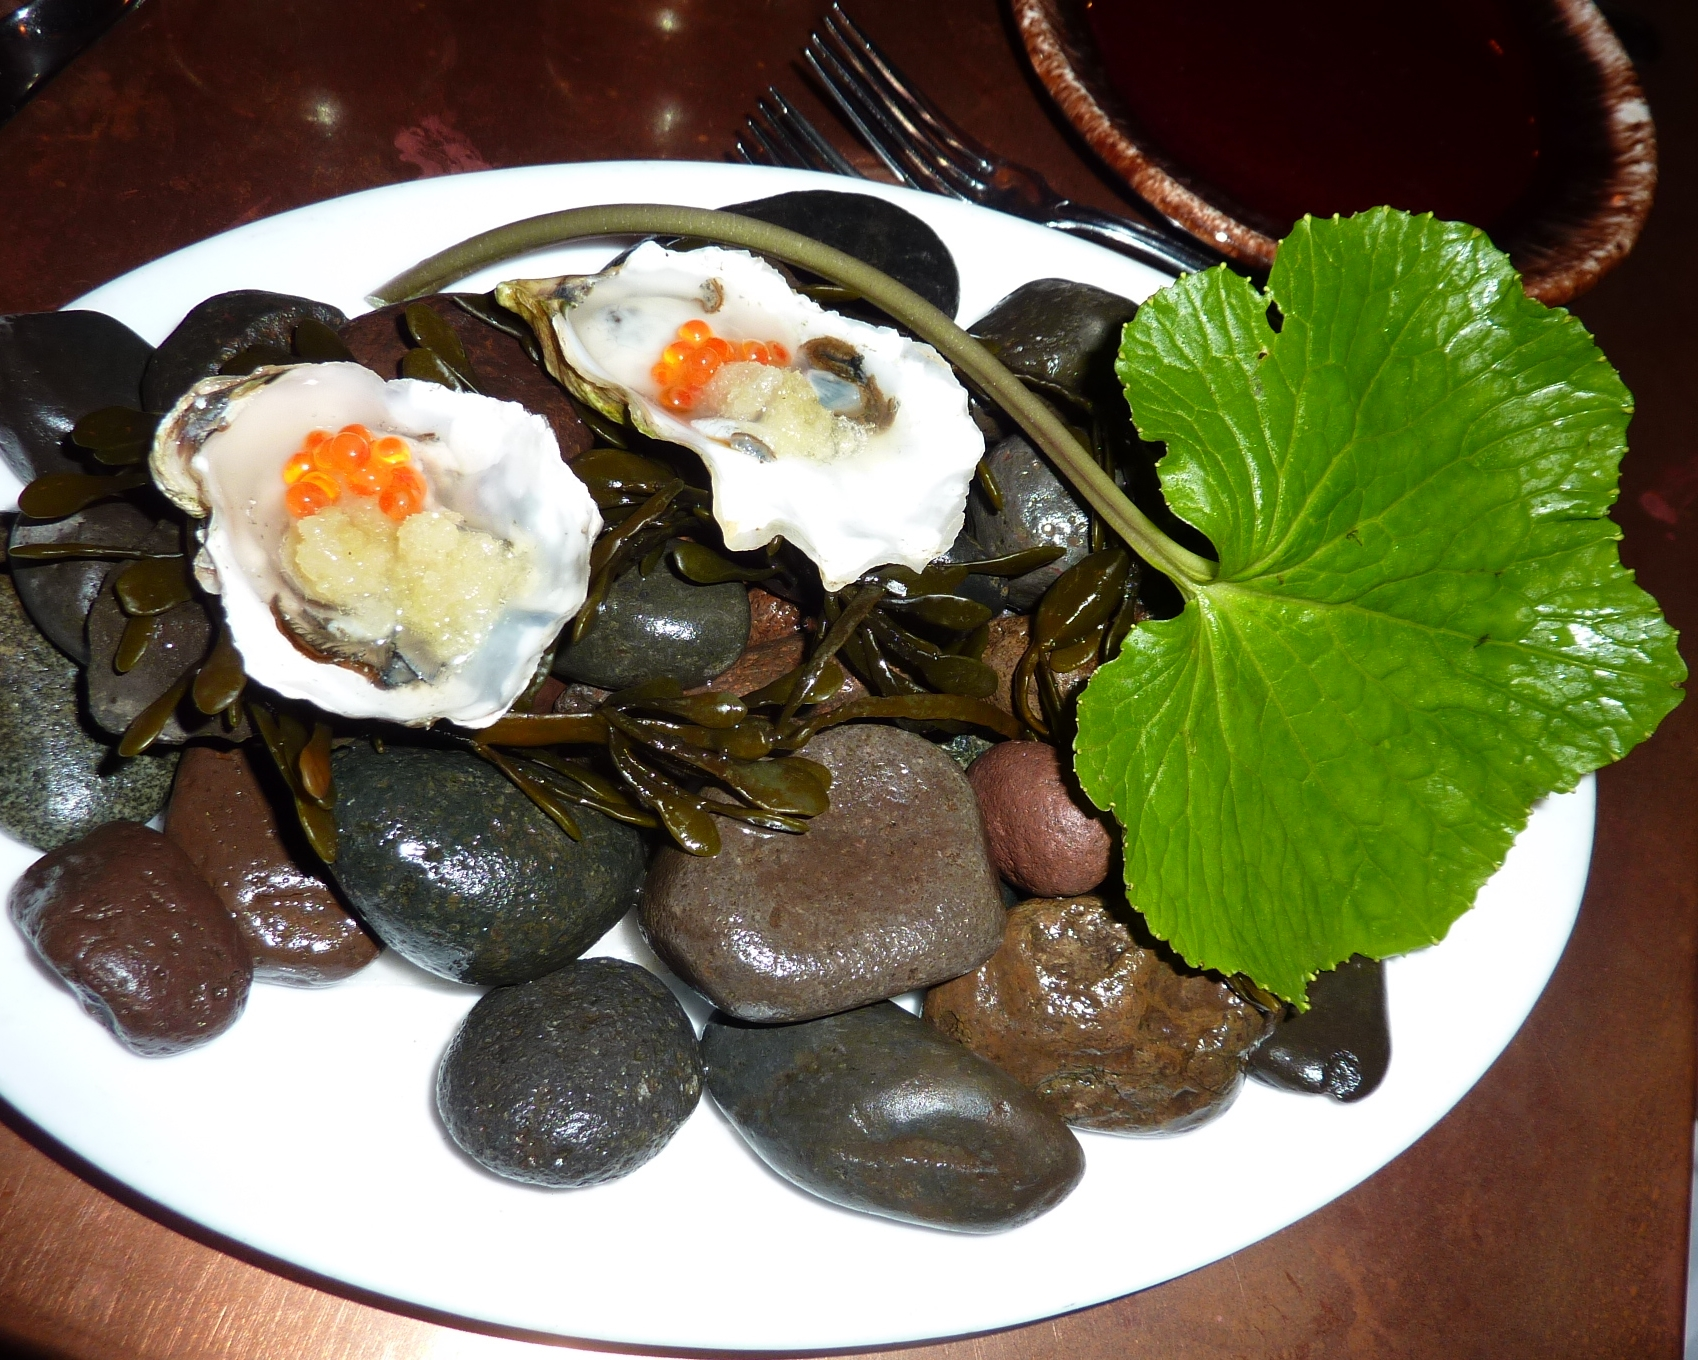 Wasabi is great with oysters.  Wasabi is used as a flavor enhancer as much as for heat.  With oysters, fresh wasabi adds a vegetal flavor that modulates the briney flavor of oysters and makes the flavor linger.   The  Dutch Restaurant in NY  paired oysters and our wasabi to great success.